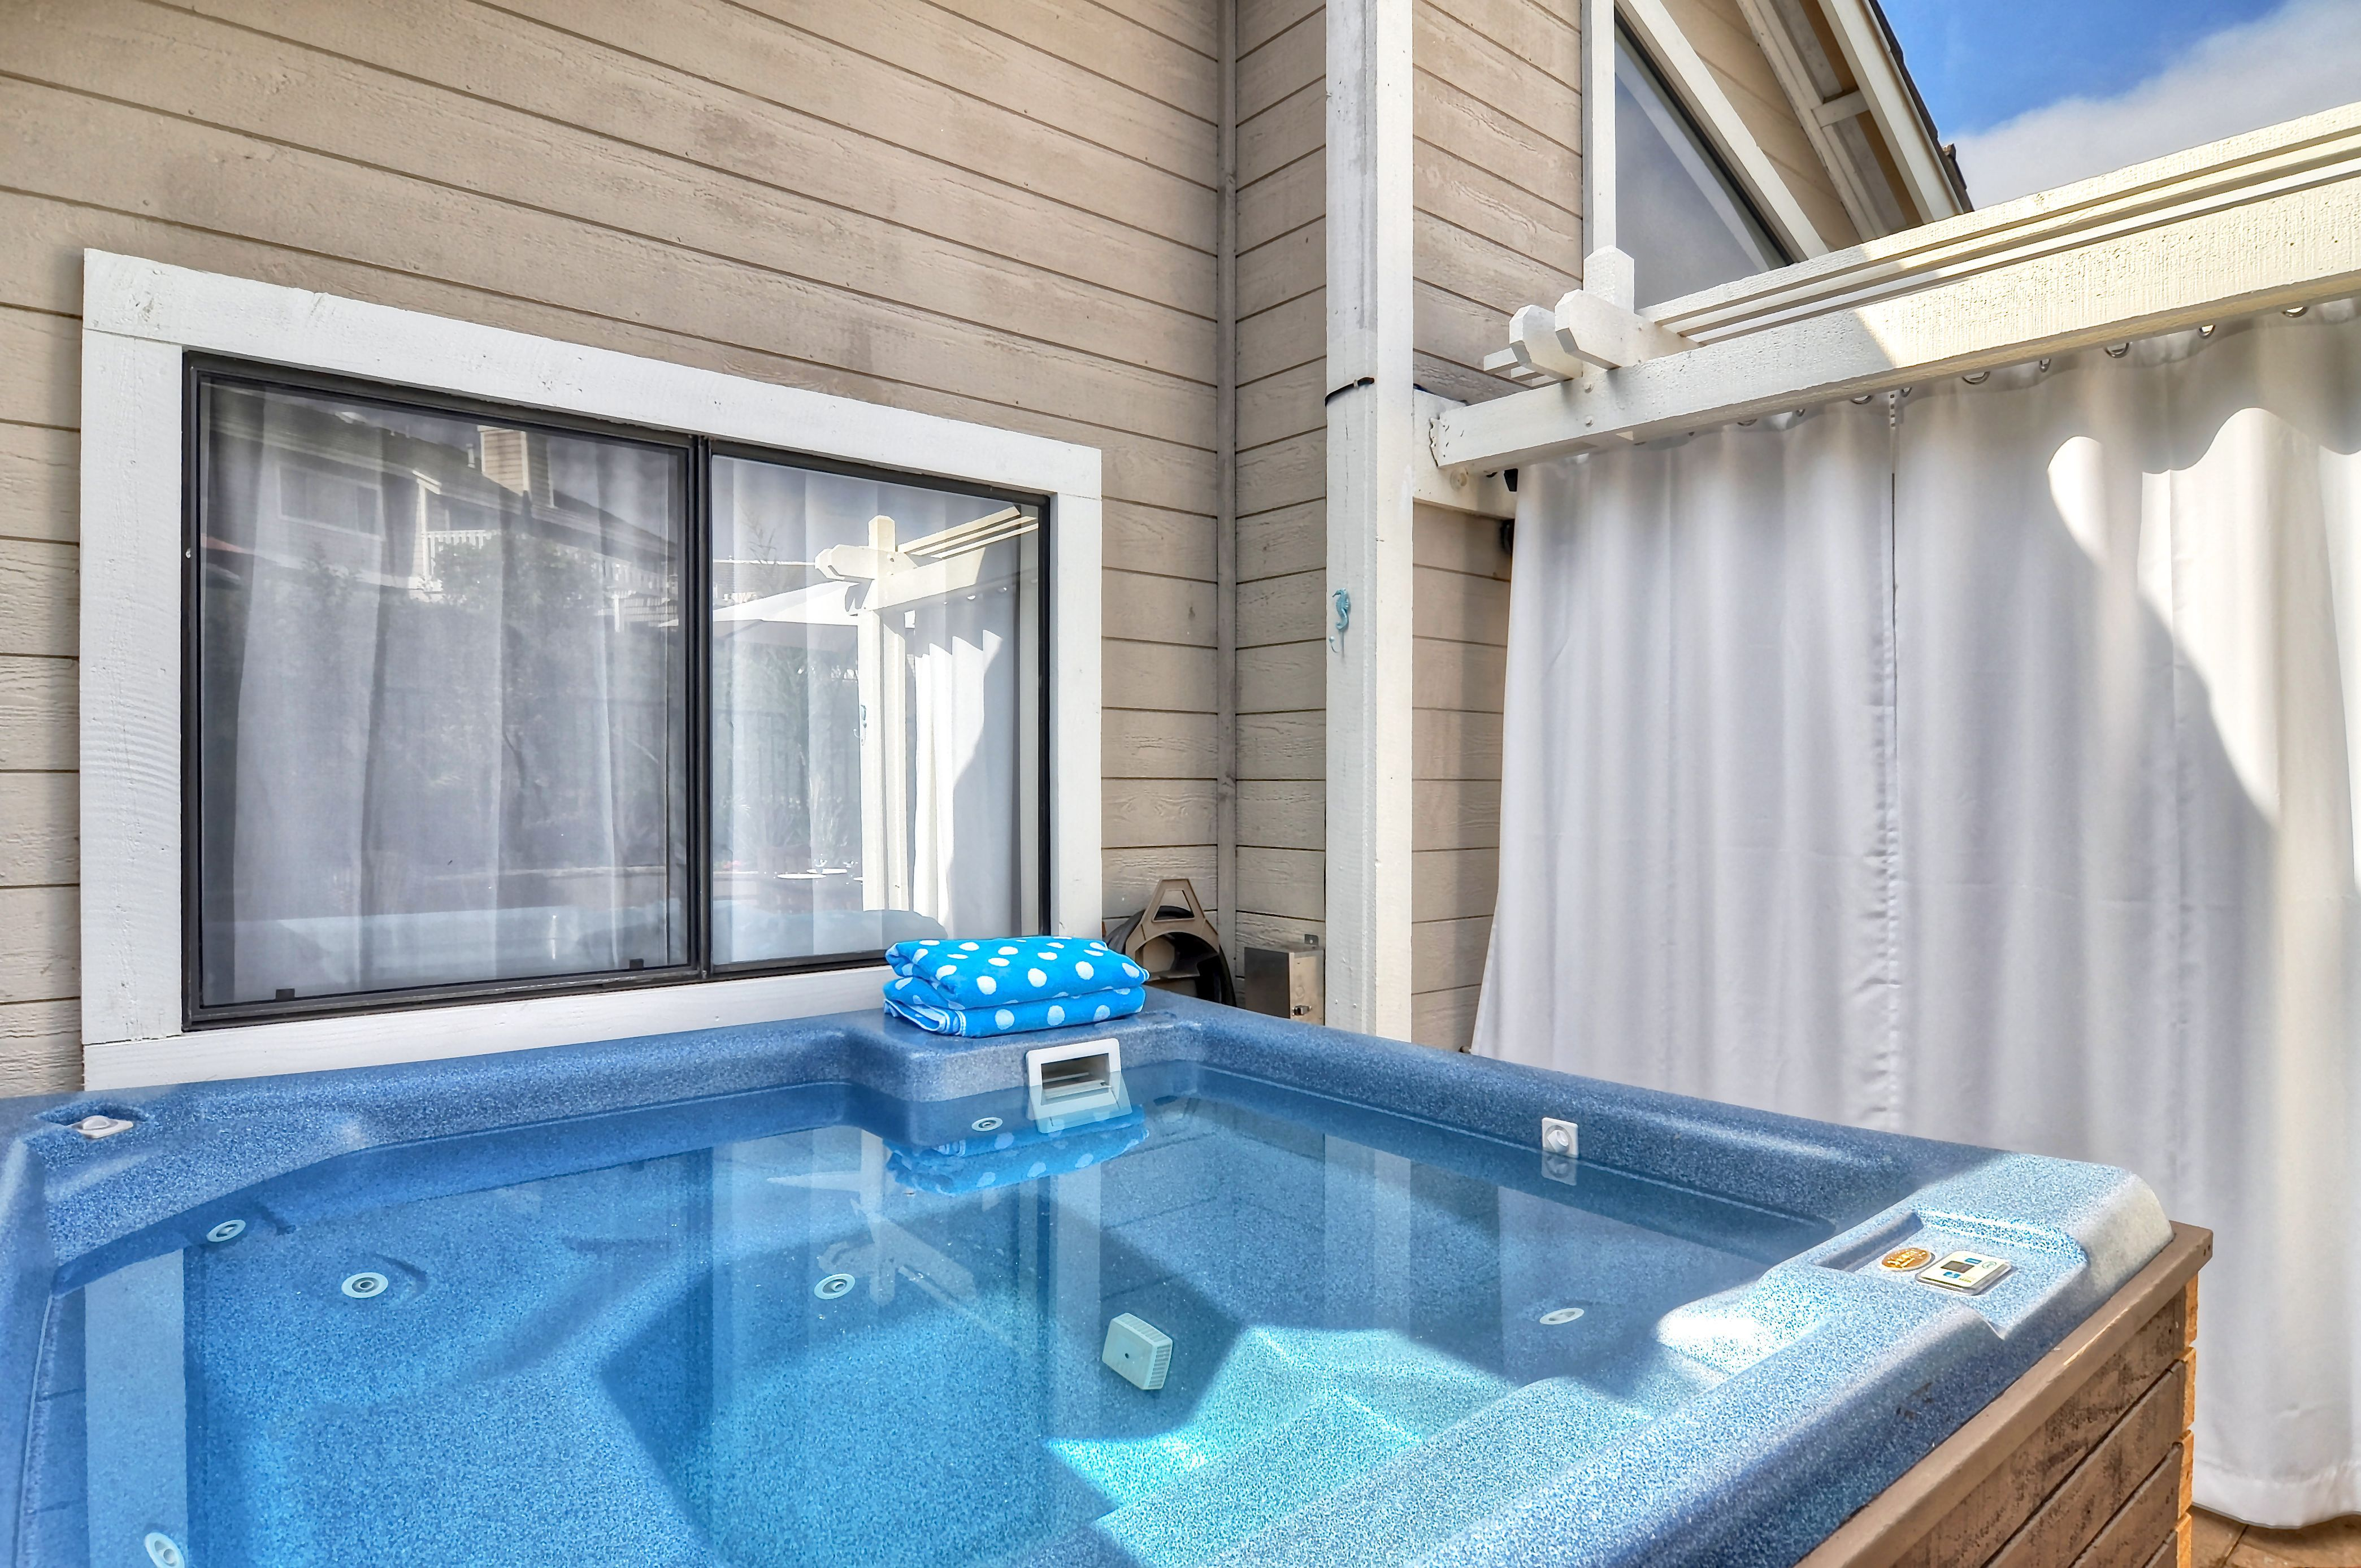 Beachville, vacation home with private hot tub, multiple community ...